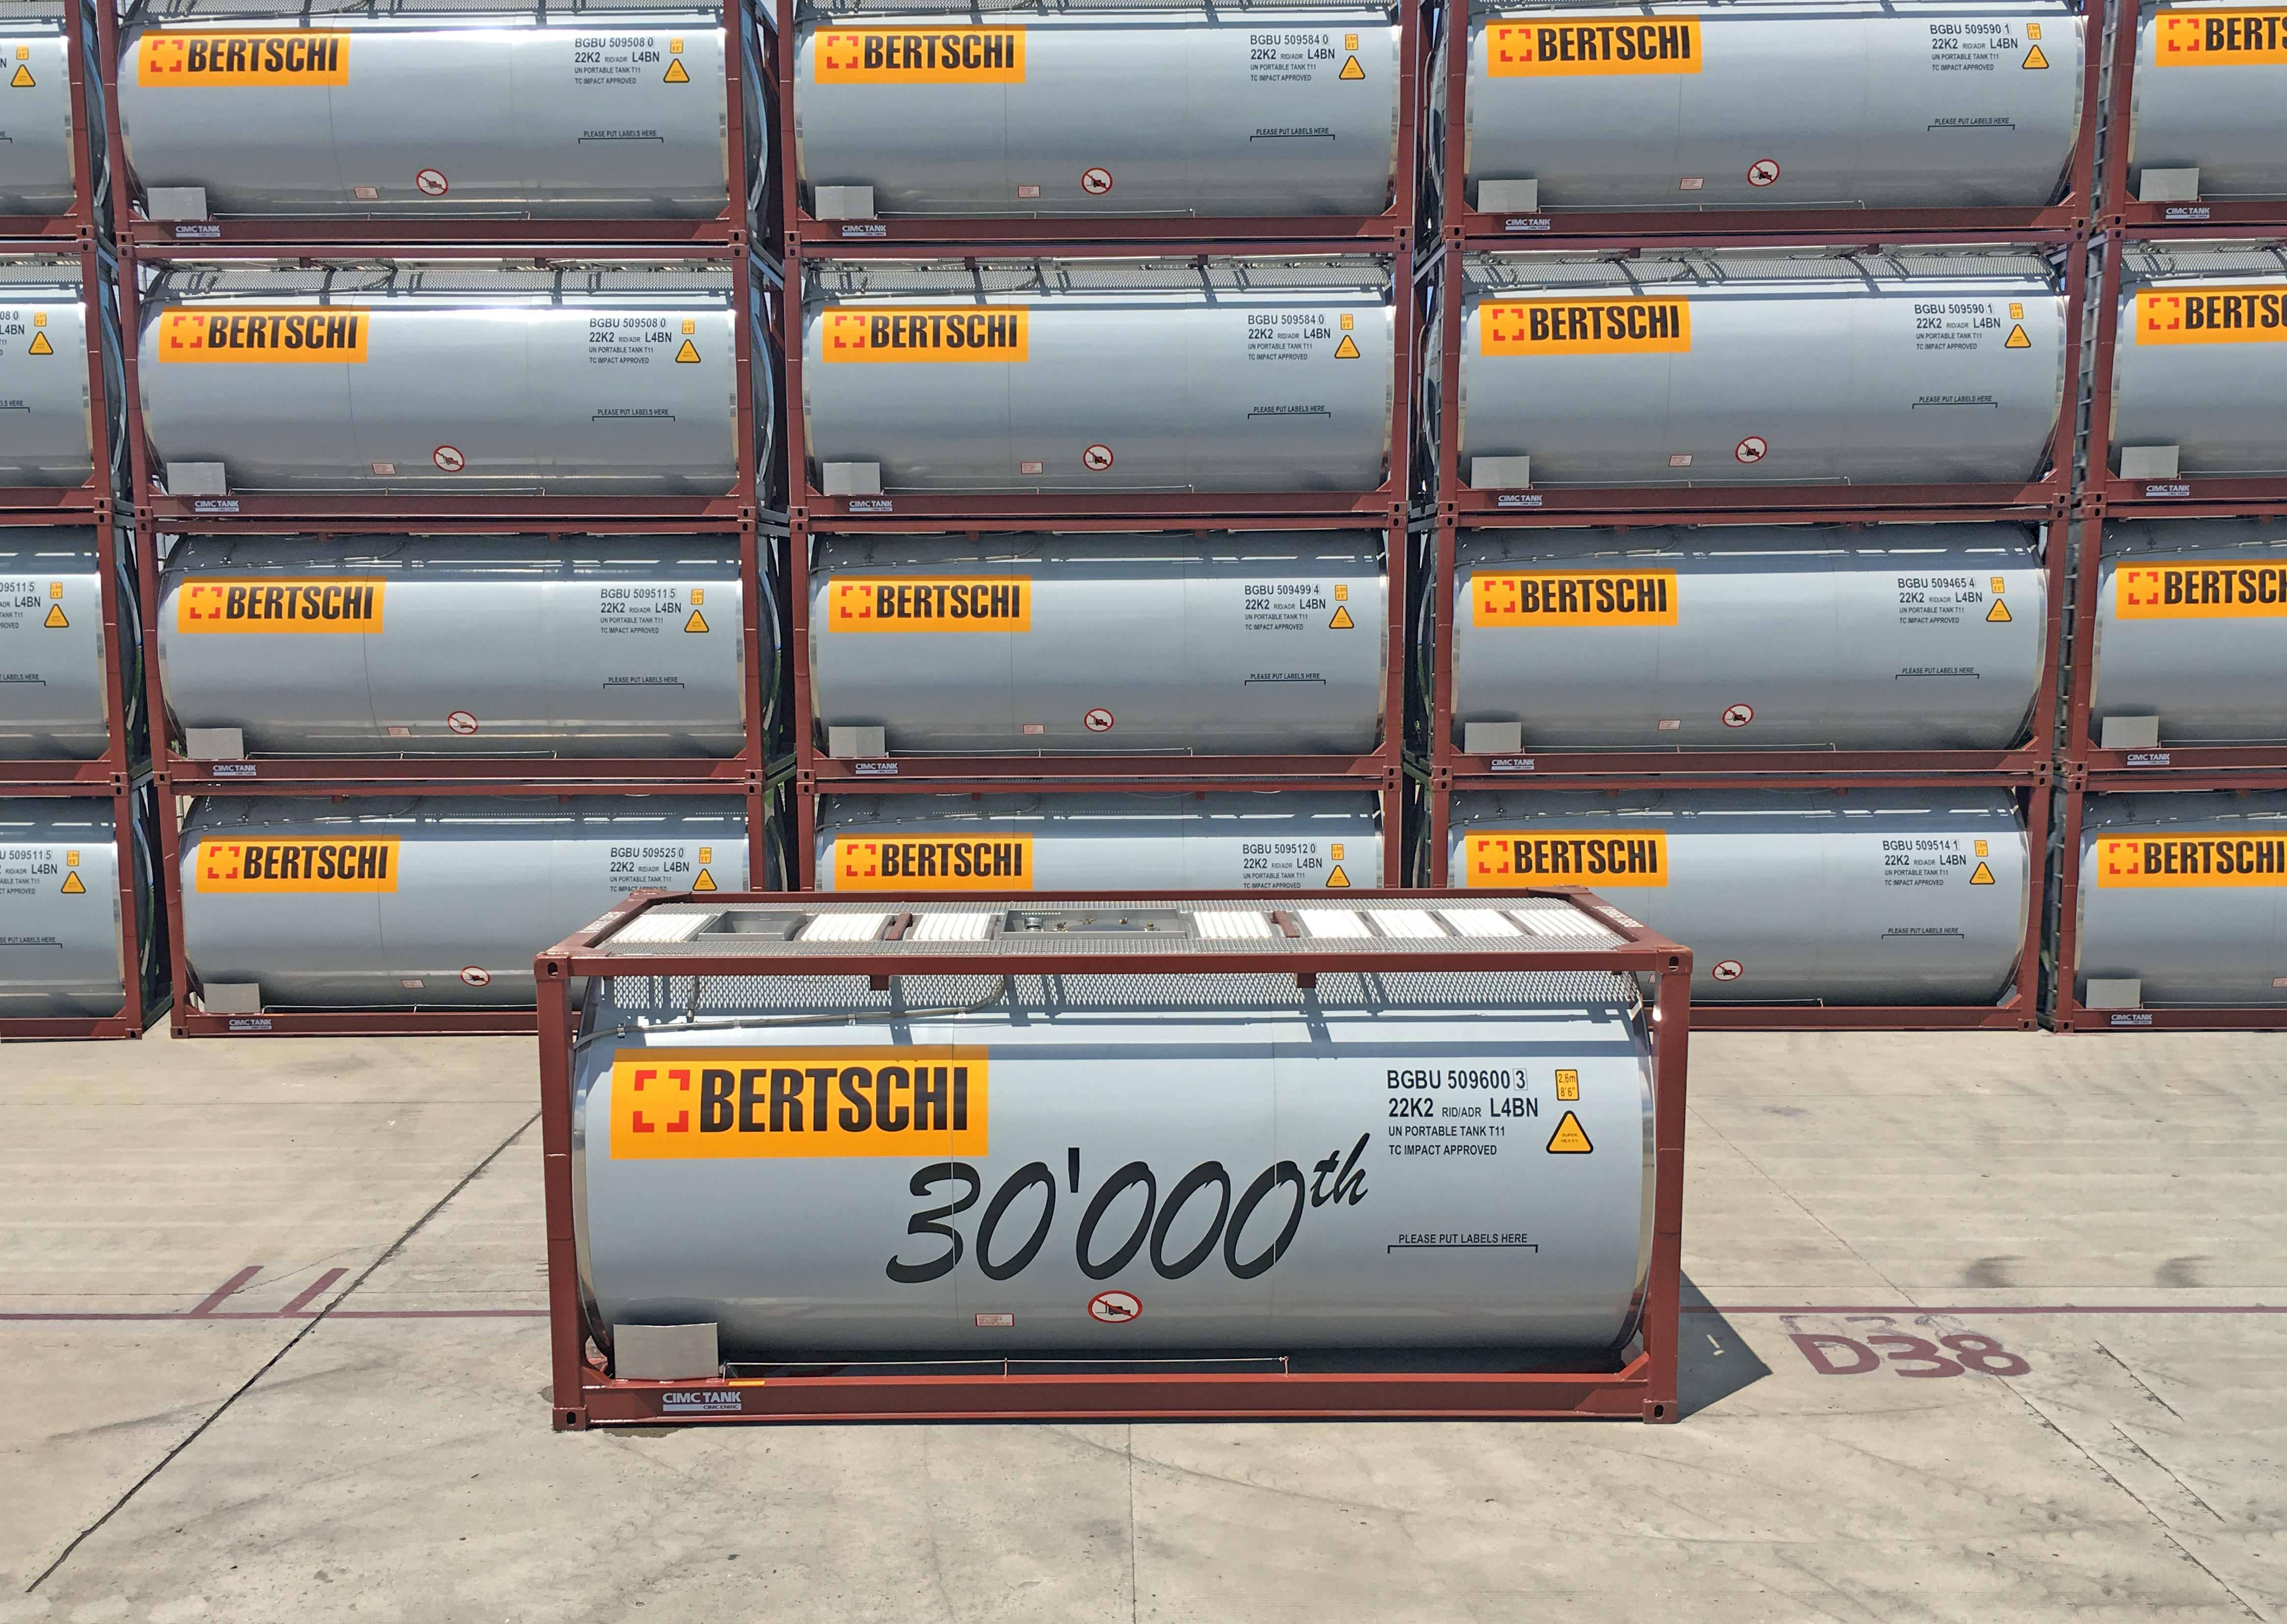 In August of this year, Bertschi is able to add the 30,000th container to its fleet. This comprises tank and silo containers that are used for transportation within Europe and global deep sea traffic, in particular for the chemical industry.